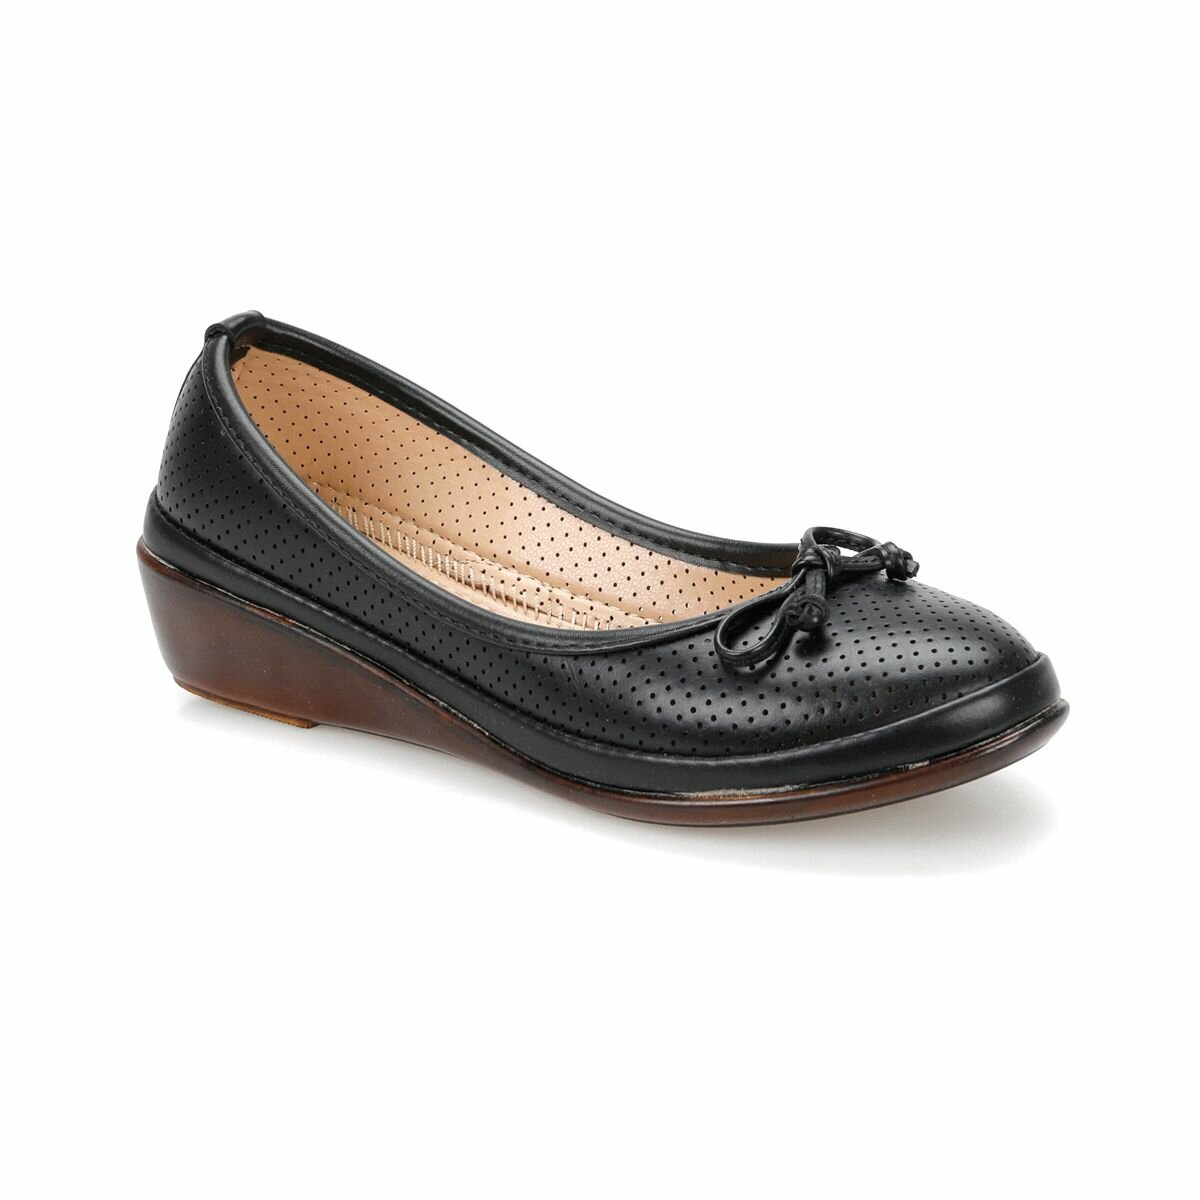 FLO 61.156549FZ Black Women Shoes Polaris